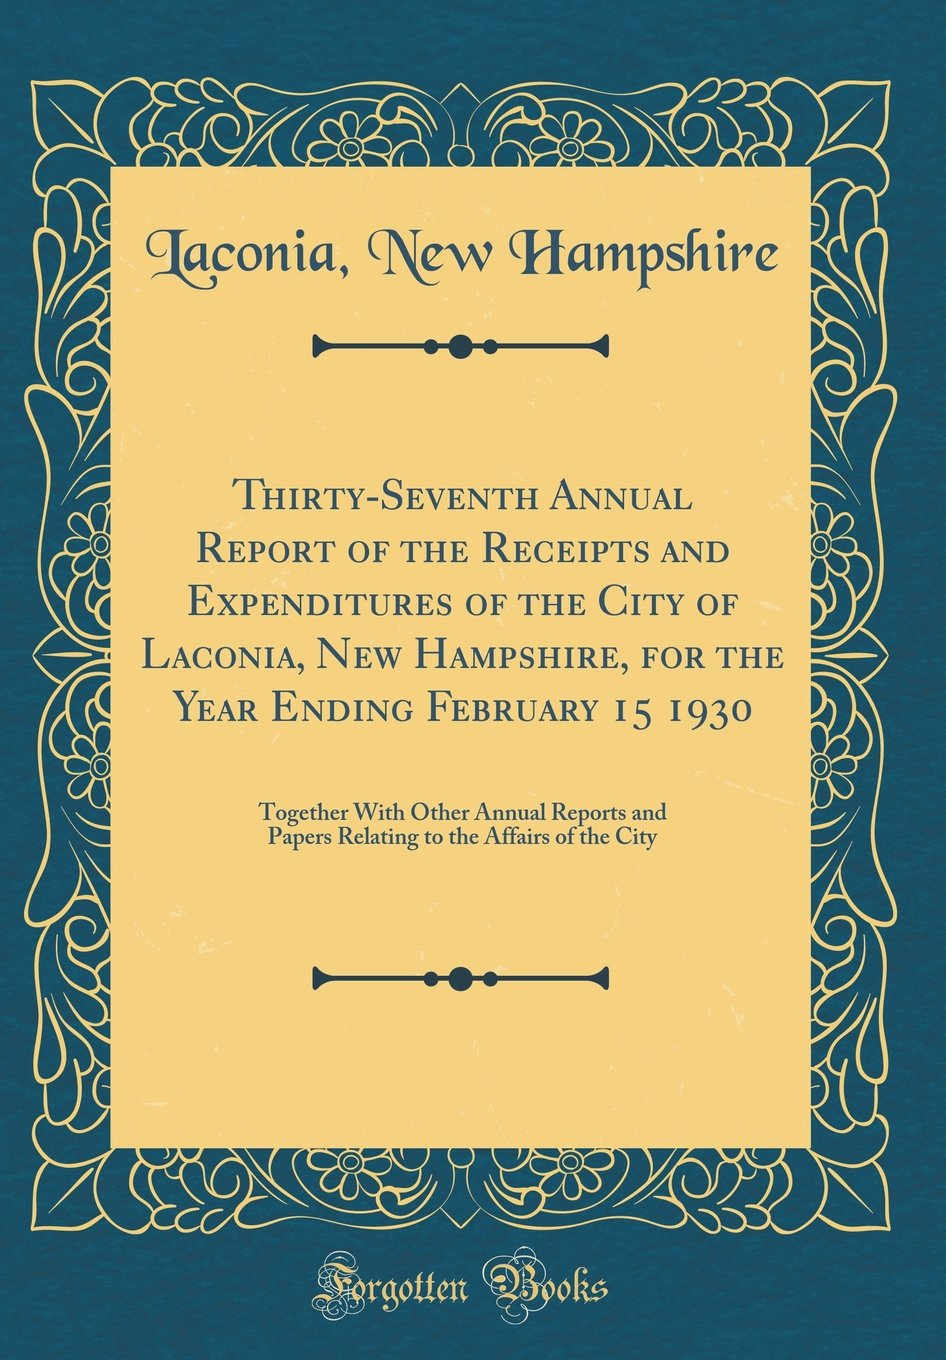 Thirty-Seventh Annual Report of the Receipts and Expenditures of the City of Laconia, New Hampshire, for the Year Ending February 15 1930: Together ... to the Affairs of the City (Classic Reprint) PDF